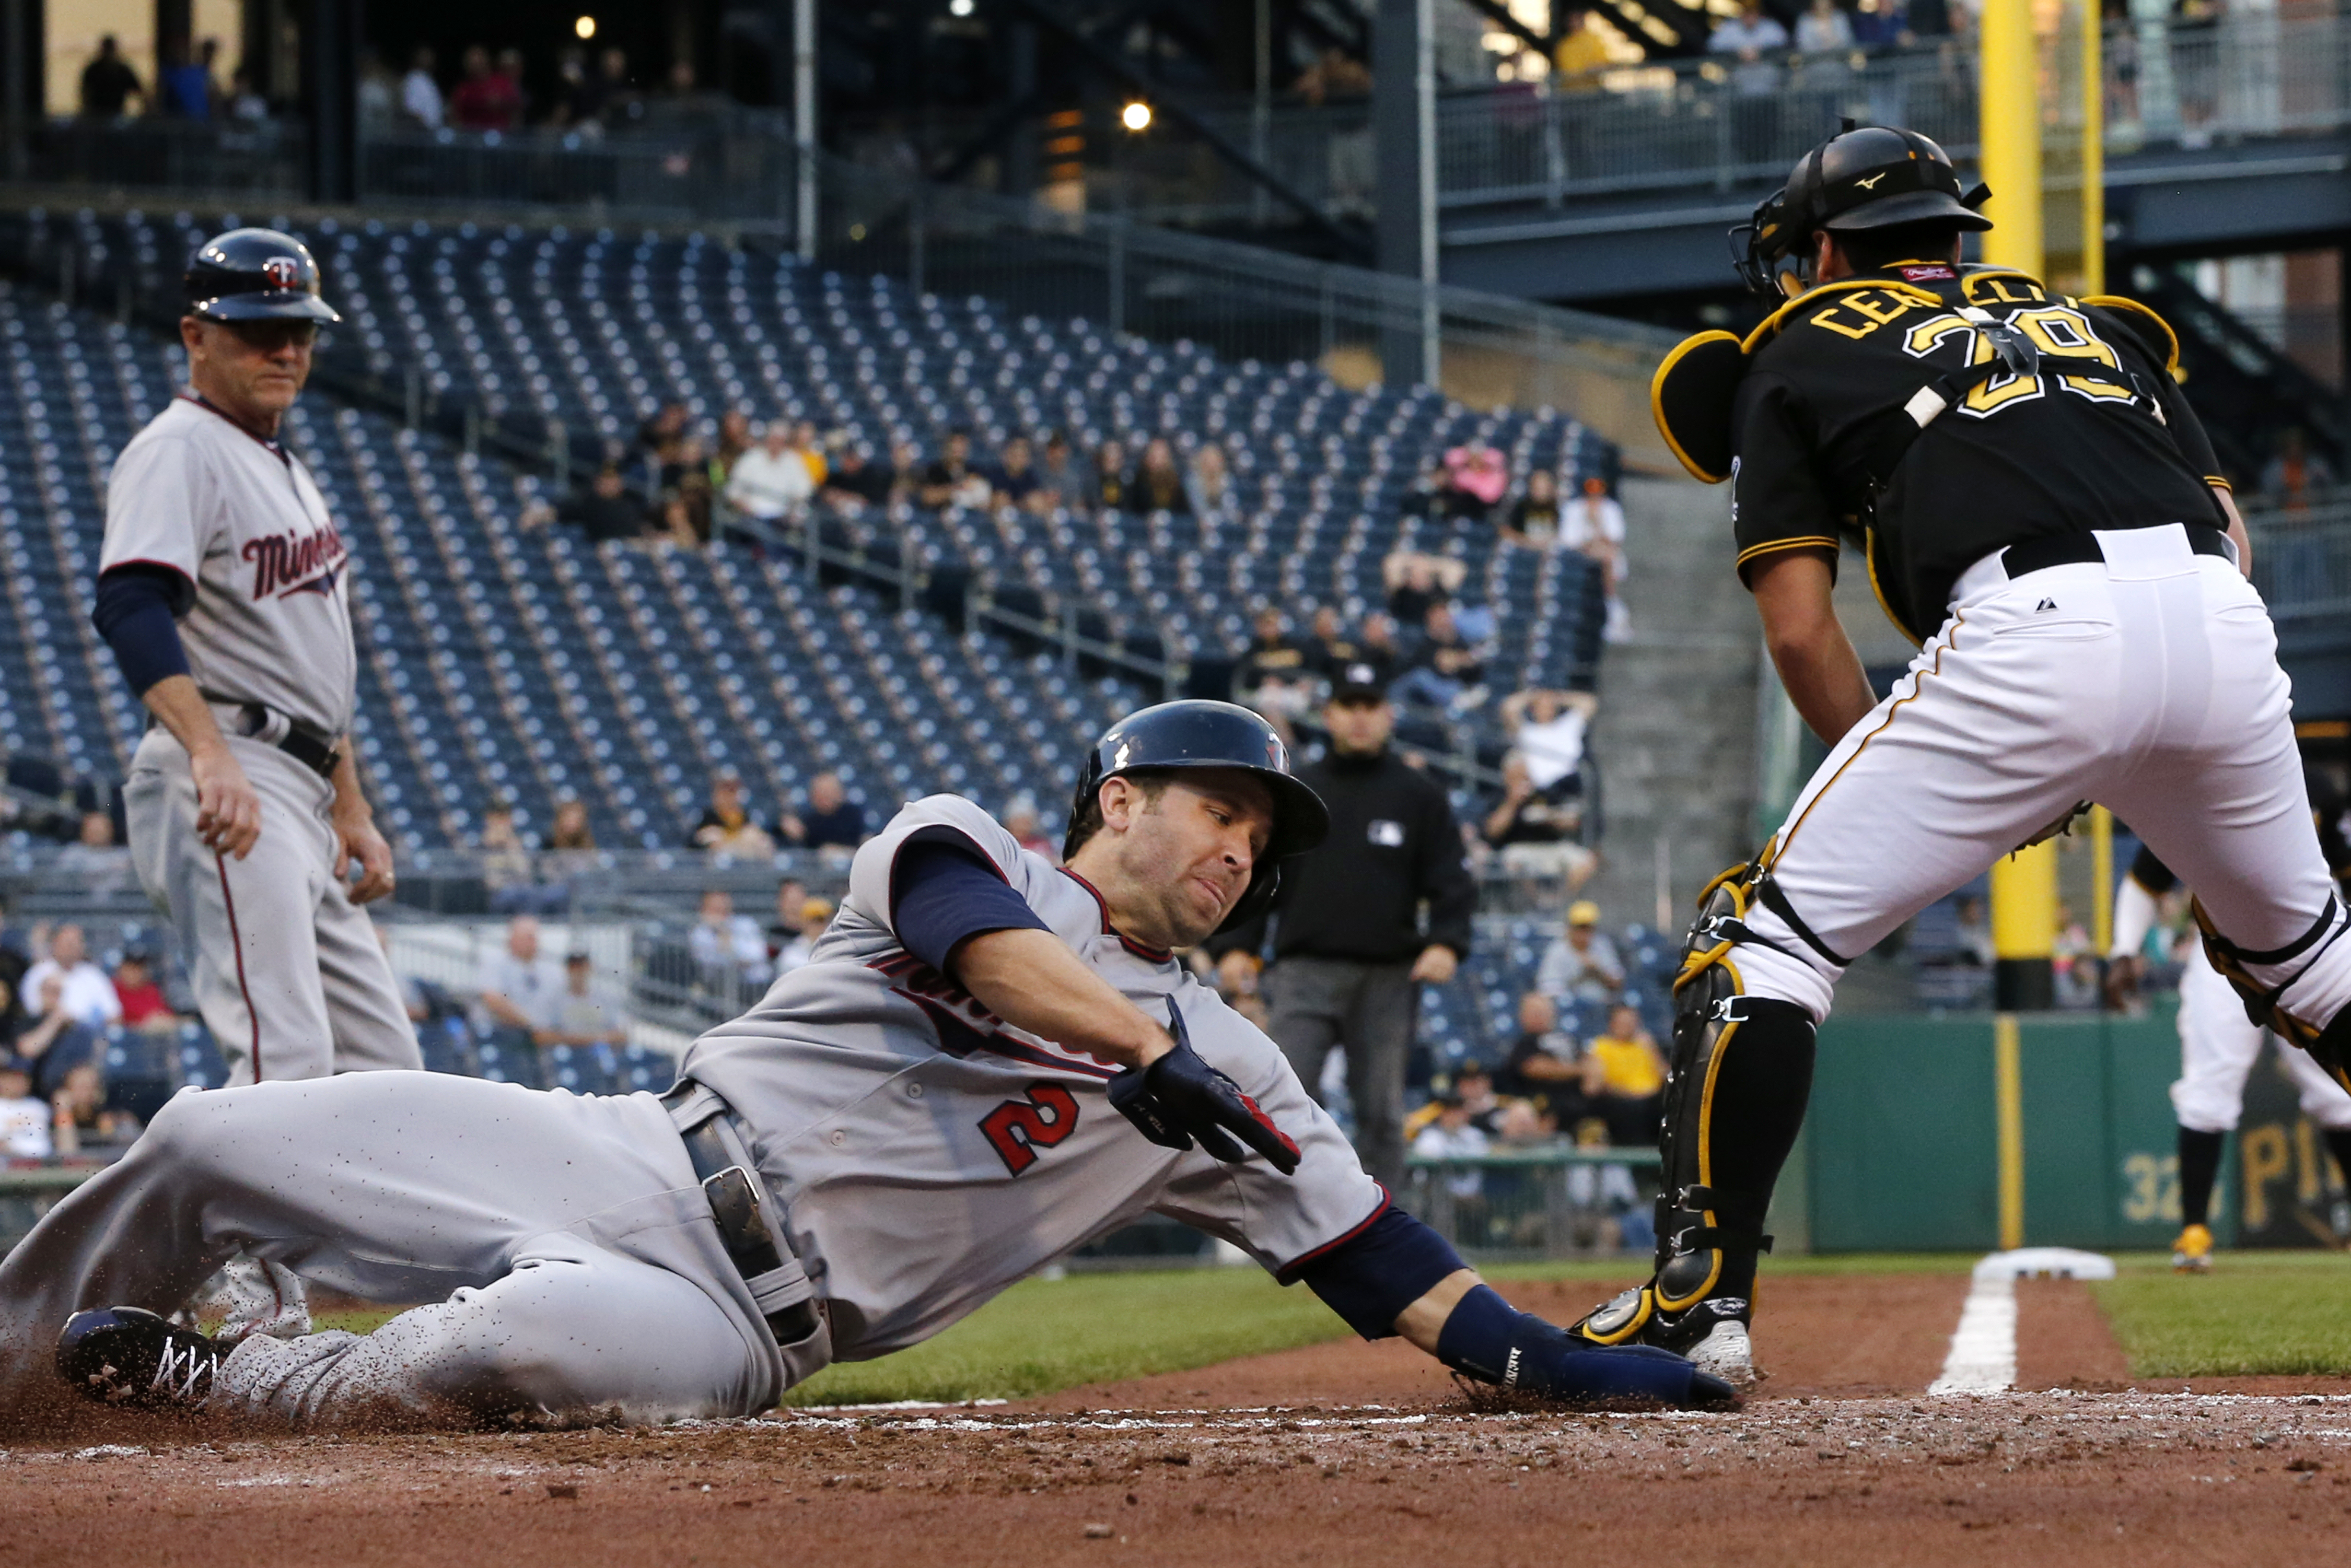 Minnesota Twins' Brian Dozier (2) slides around Pittsburgh Pirates catcher Francisco Cervelli (29) to score on a bases-loaded double by Joe Mauer off Pirates starting pitcher Francisco Liriano during the second inning of a baseball game in Pittsburgh on T